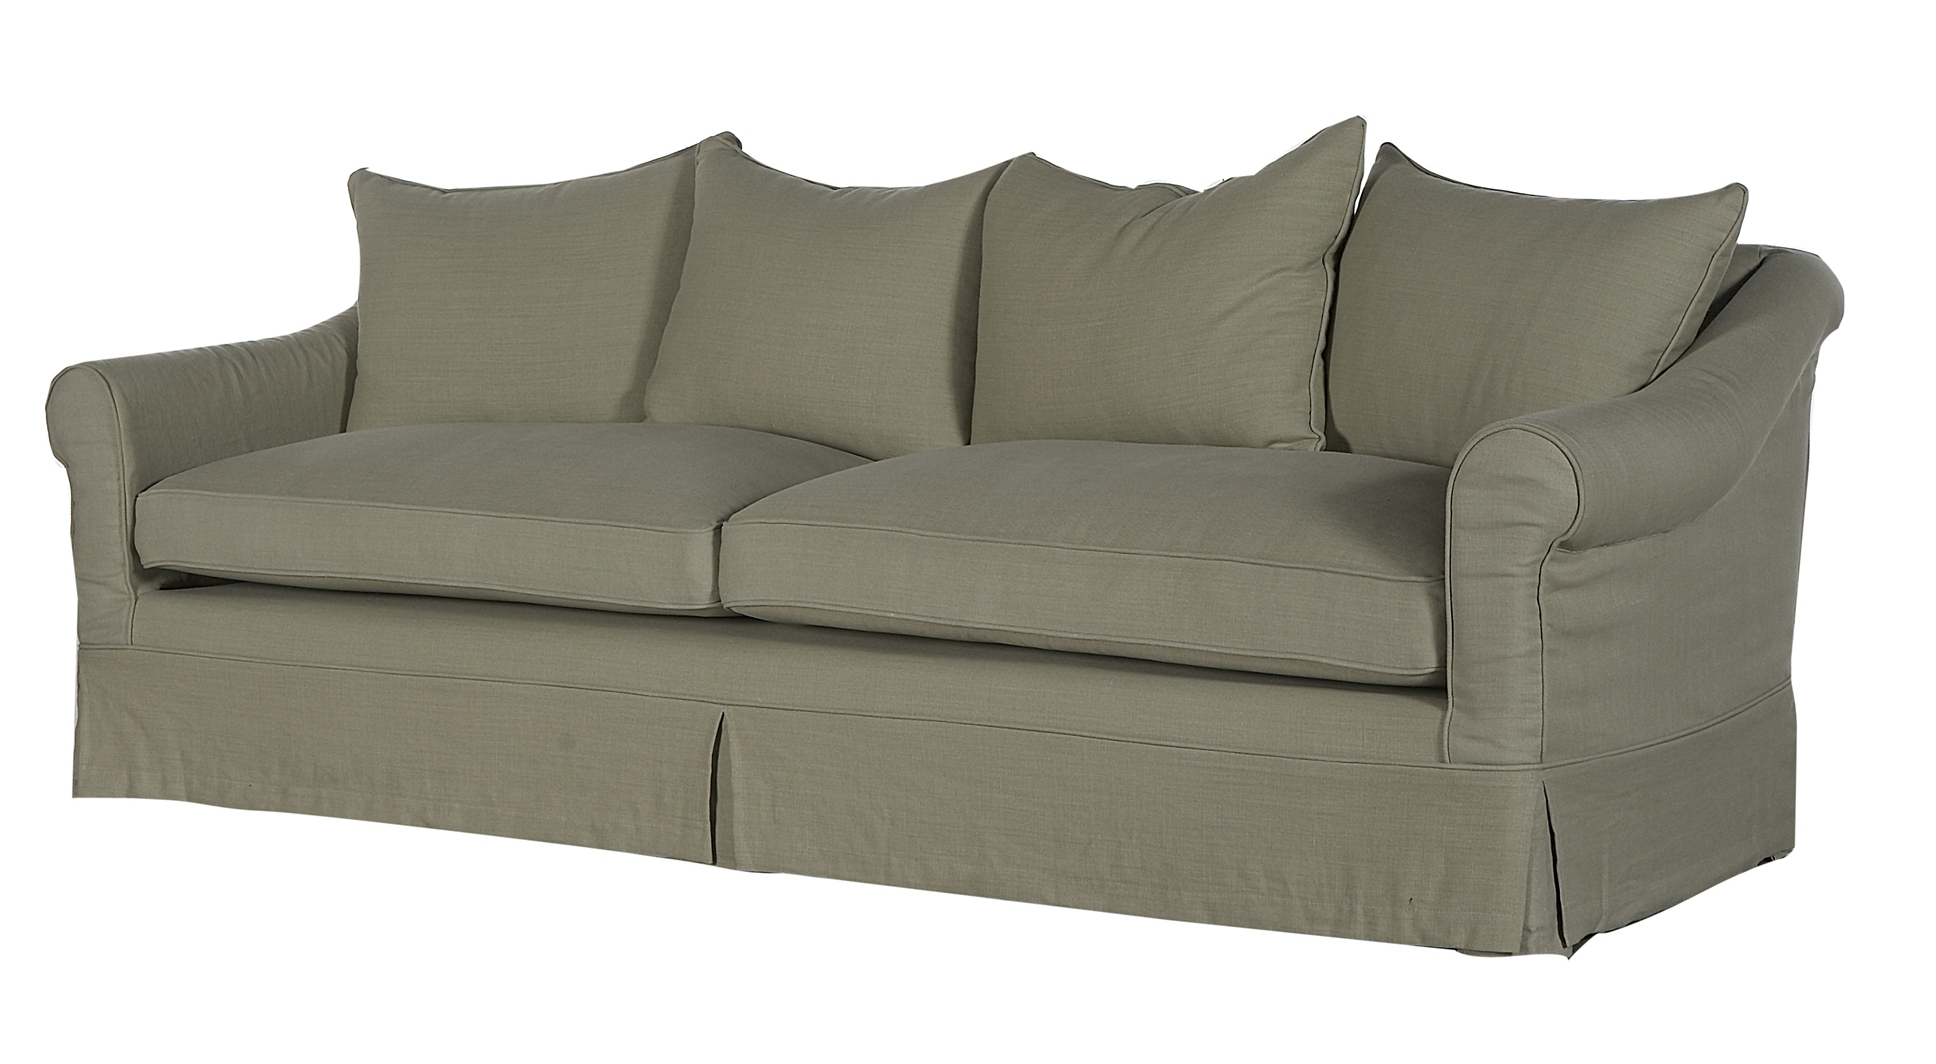 Well Liked Sofas With Removable Cover Intended For Sofa Design Simple Covers Ideas